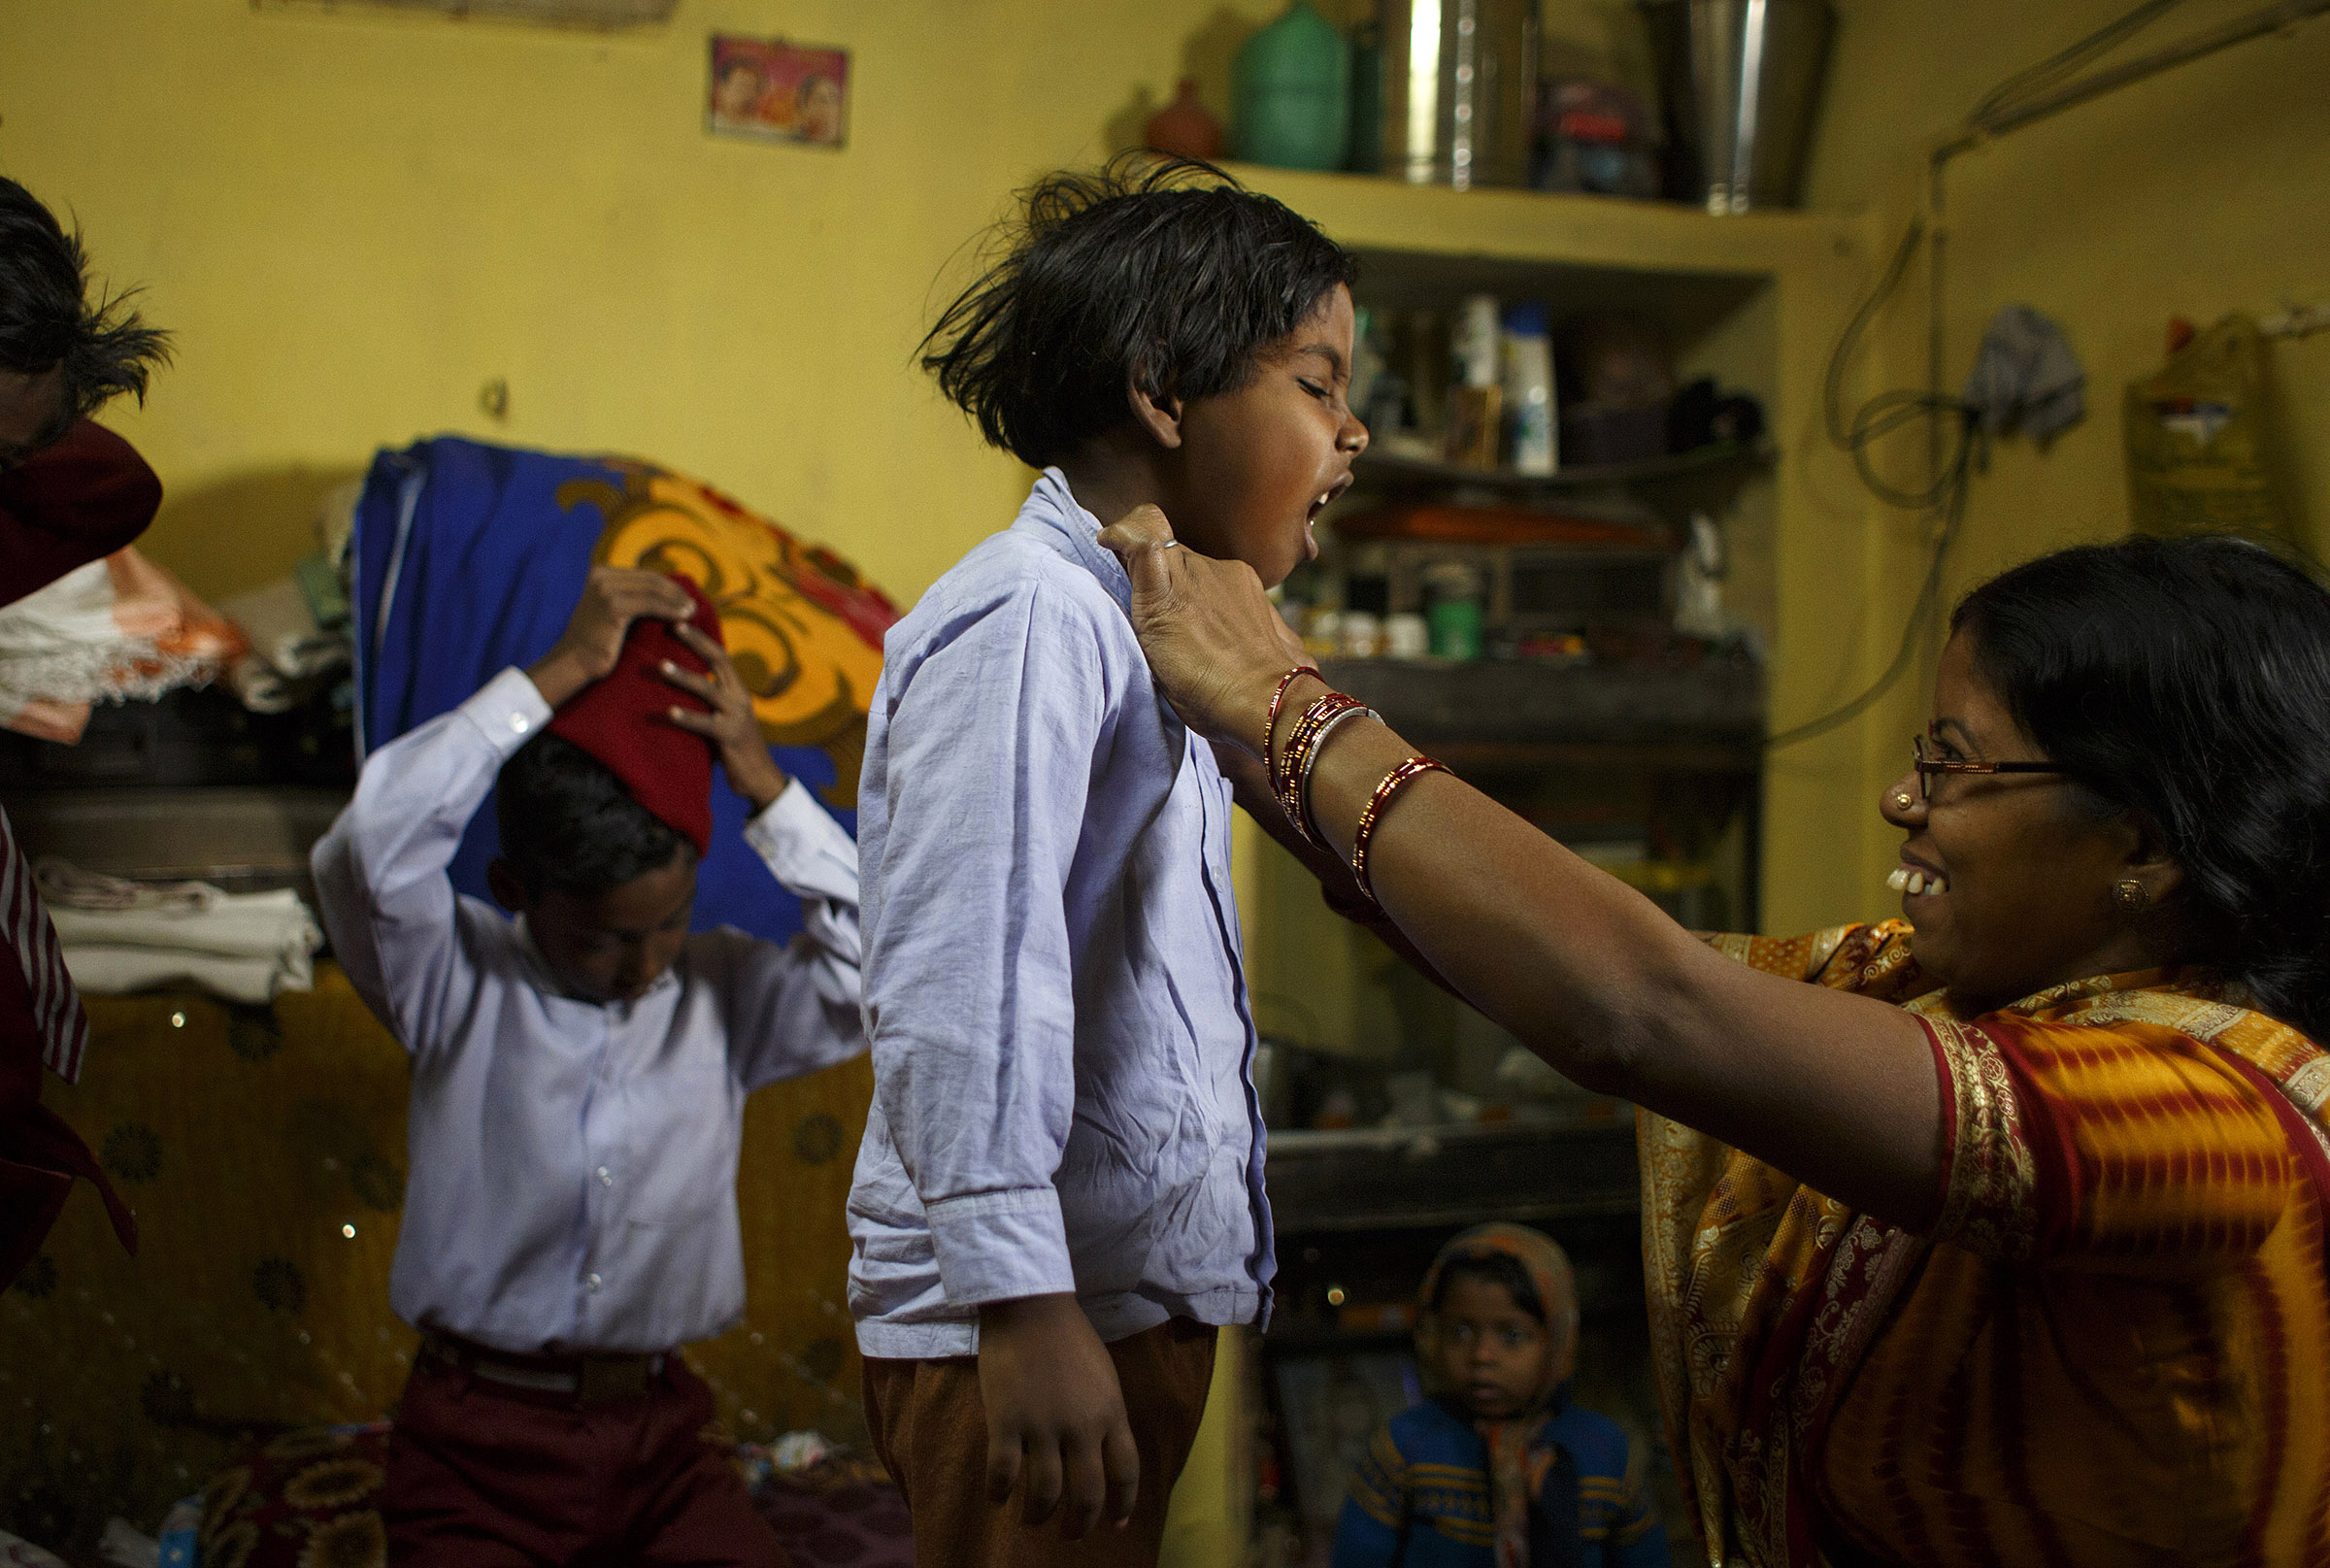 Seema Devi, 33, helps her daughter, Semeran Kumari, 6, remove her school uniform after class at their home in Patna, Bihar. Though she came from a large family, she decided her third child would be her last, and after using a Copper-T IUD for years, she chose to get sterilized. She said it would be difficult for her and her husband to support another child, and to provide their three children with the kind of education they want for them.  SARAH WEISER